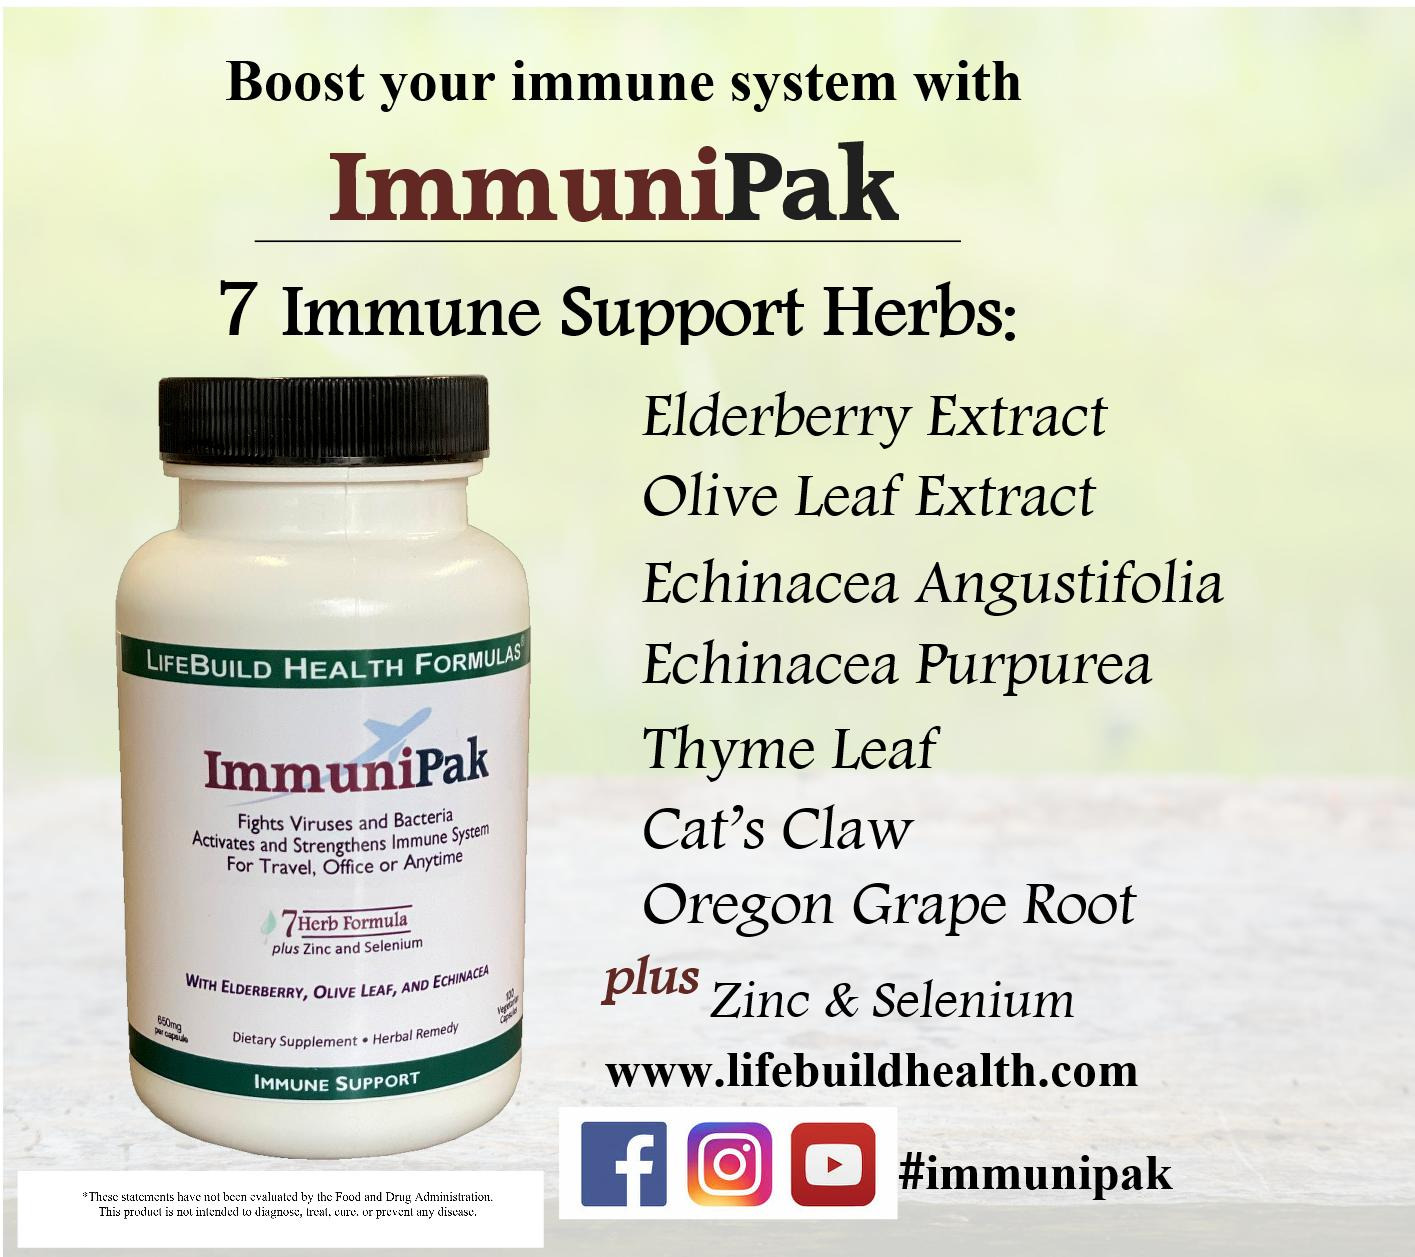 Boost Your Immune System with ImmuniPak